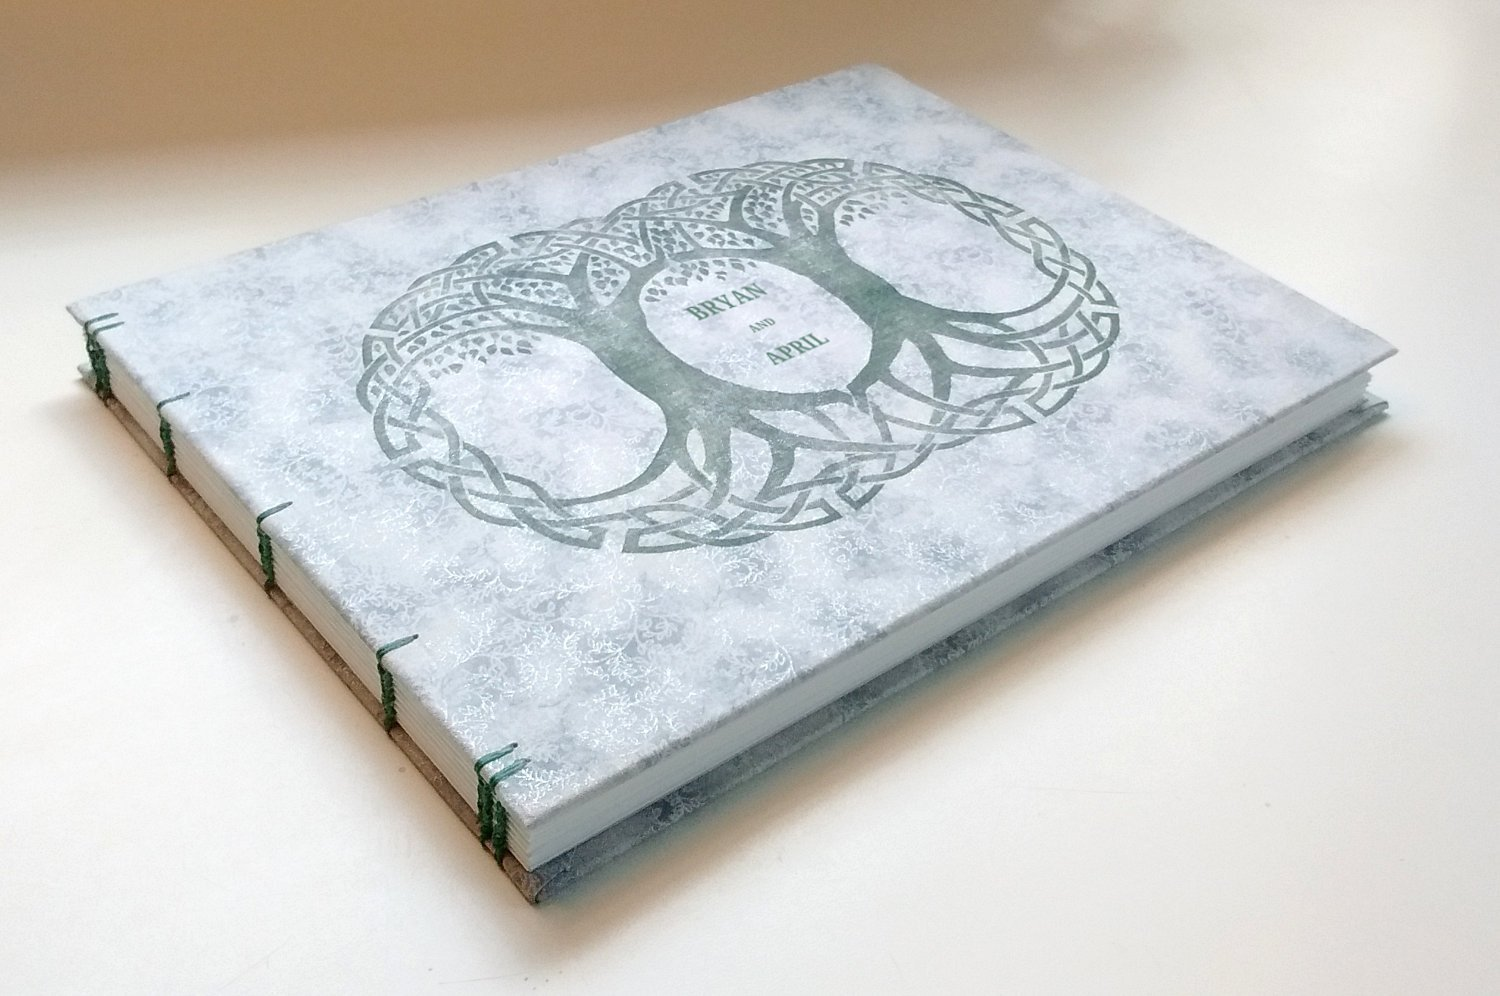 Personalized wedding album, guest register, guest book, photo album, hand-bound with Coptic stitching in wood and cloth, with original double Celtic Tree-of-Life artwork on cover.